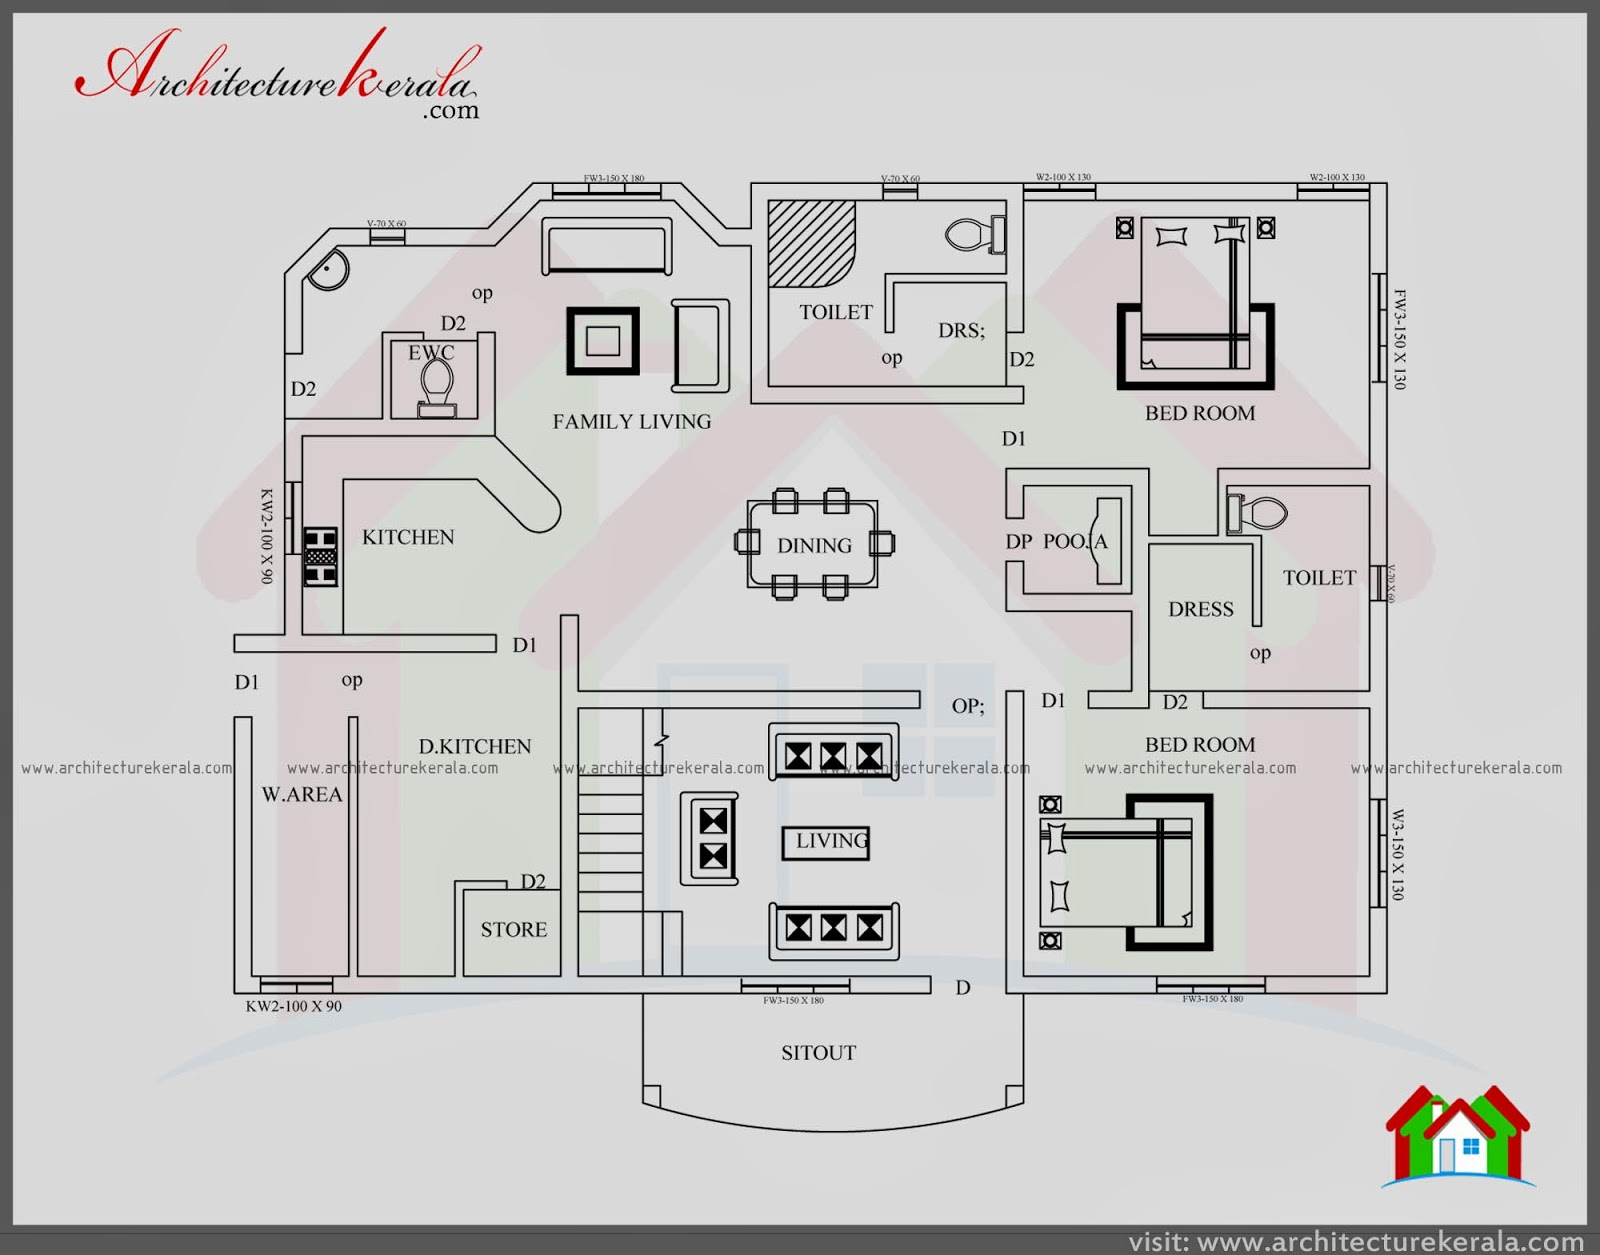 4 Bedroom House Plans Kerala Style T Ideas. House Plans With 4 Bedrooms Kerala Style   House Decor